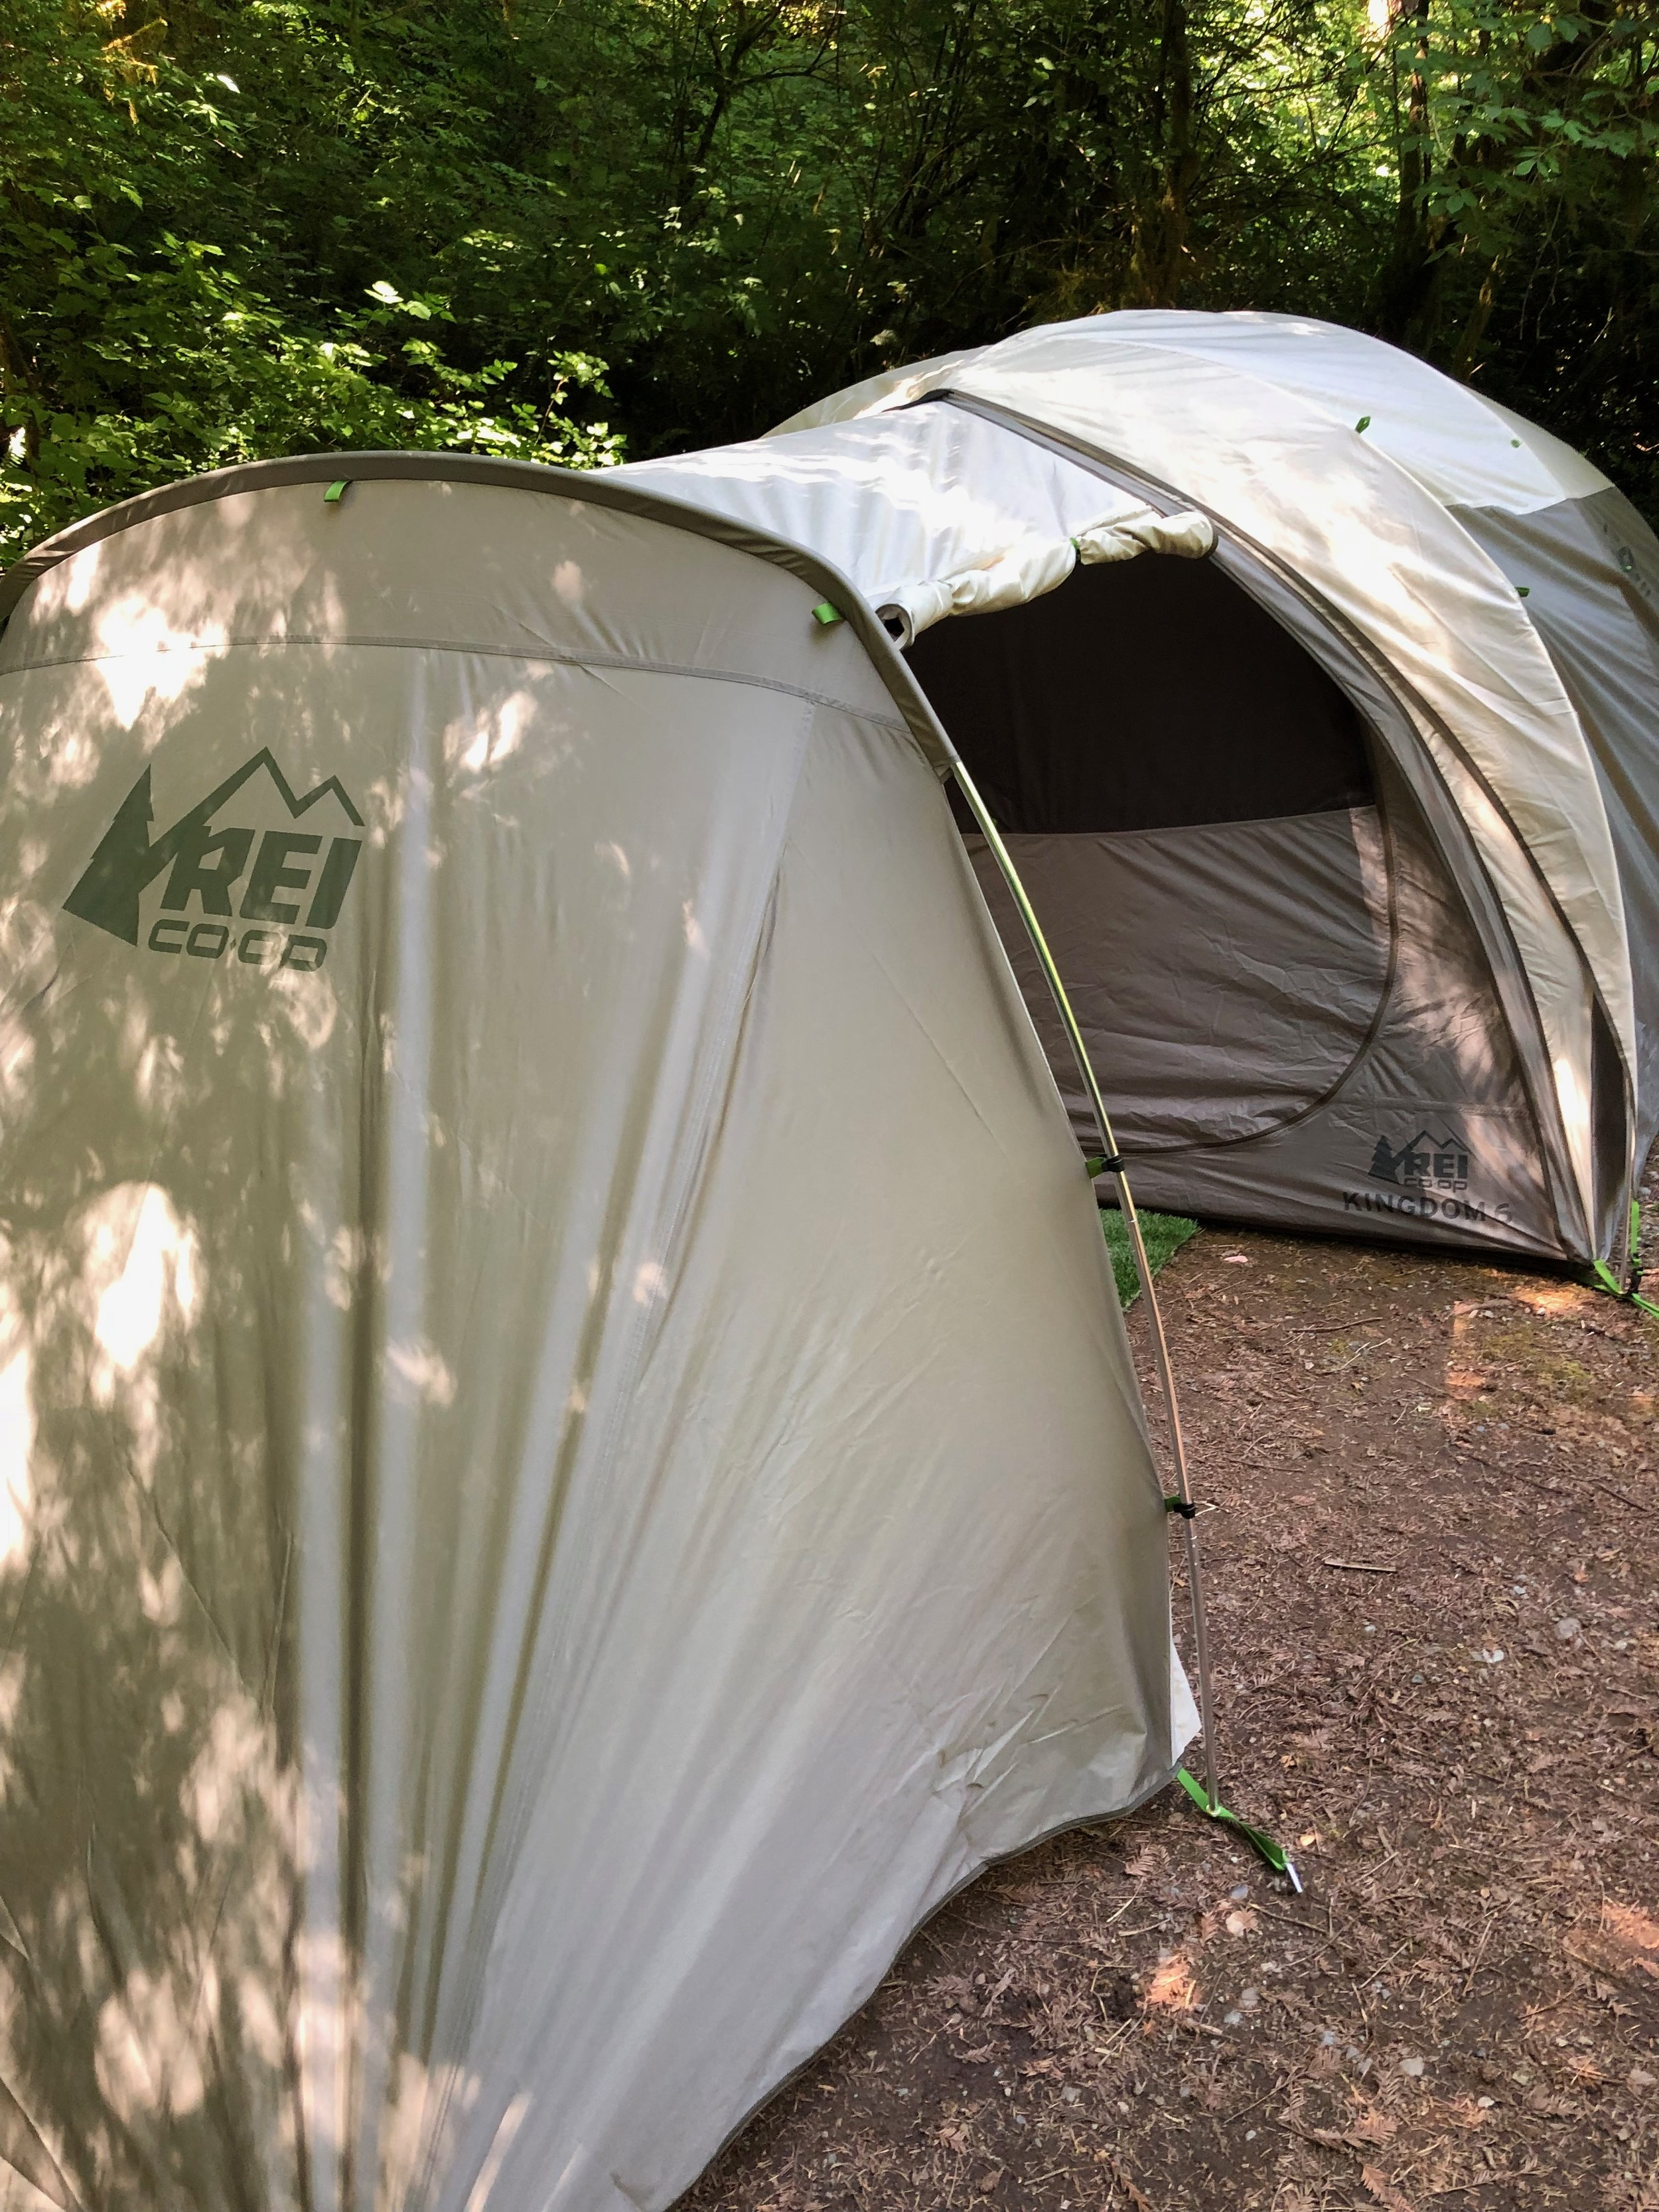 REI Kingdom 6 tent with optional Garage attached.